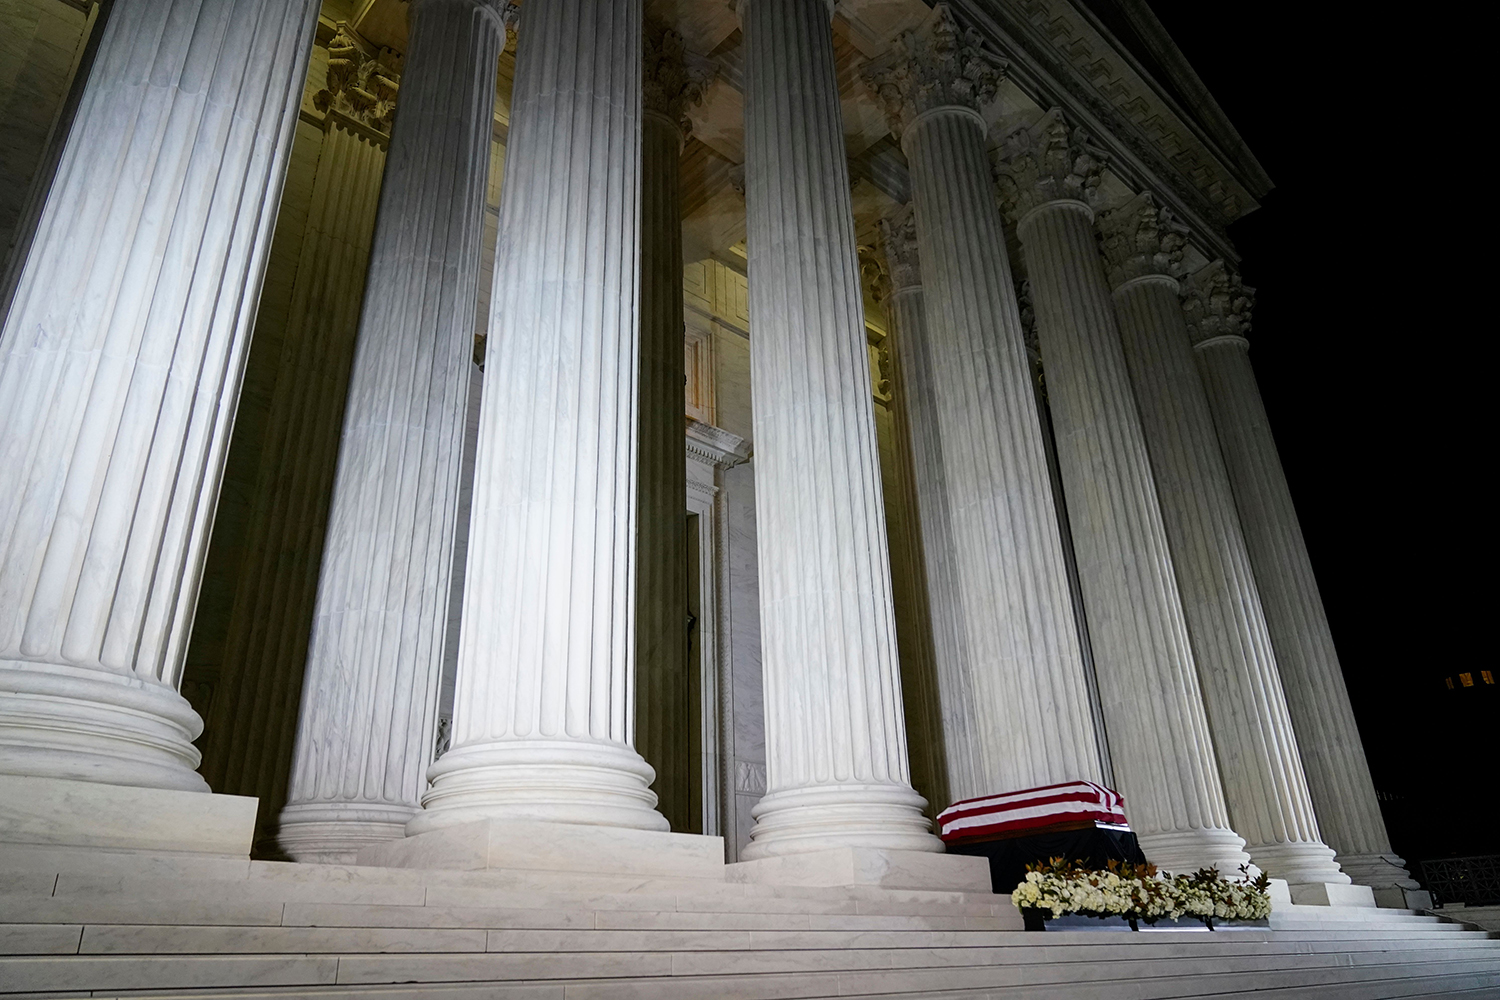 The flag-draped casket of Justice Ruth Bader Ginsburg lies in repose under the portico at the top of the front steps of the U.S. Supreme Court building in Washington on Sept. 23. ANDREW HARNIK/POOL/AFP via Getty Images